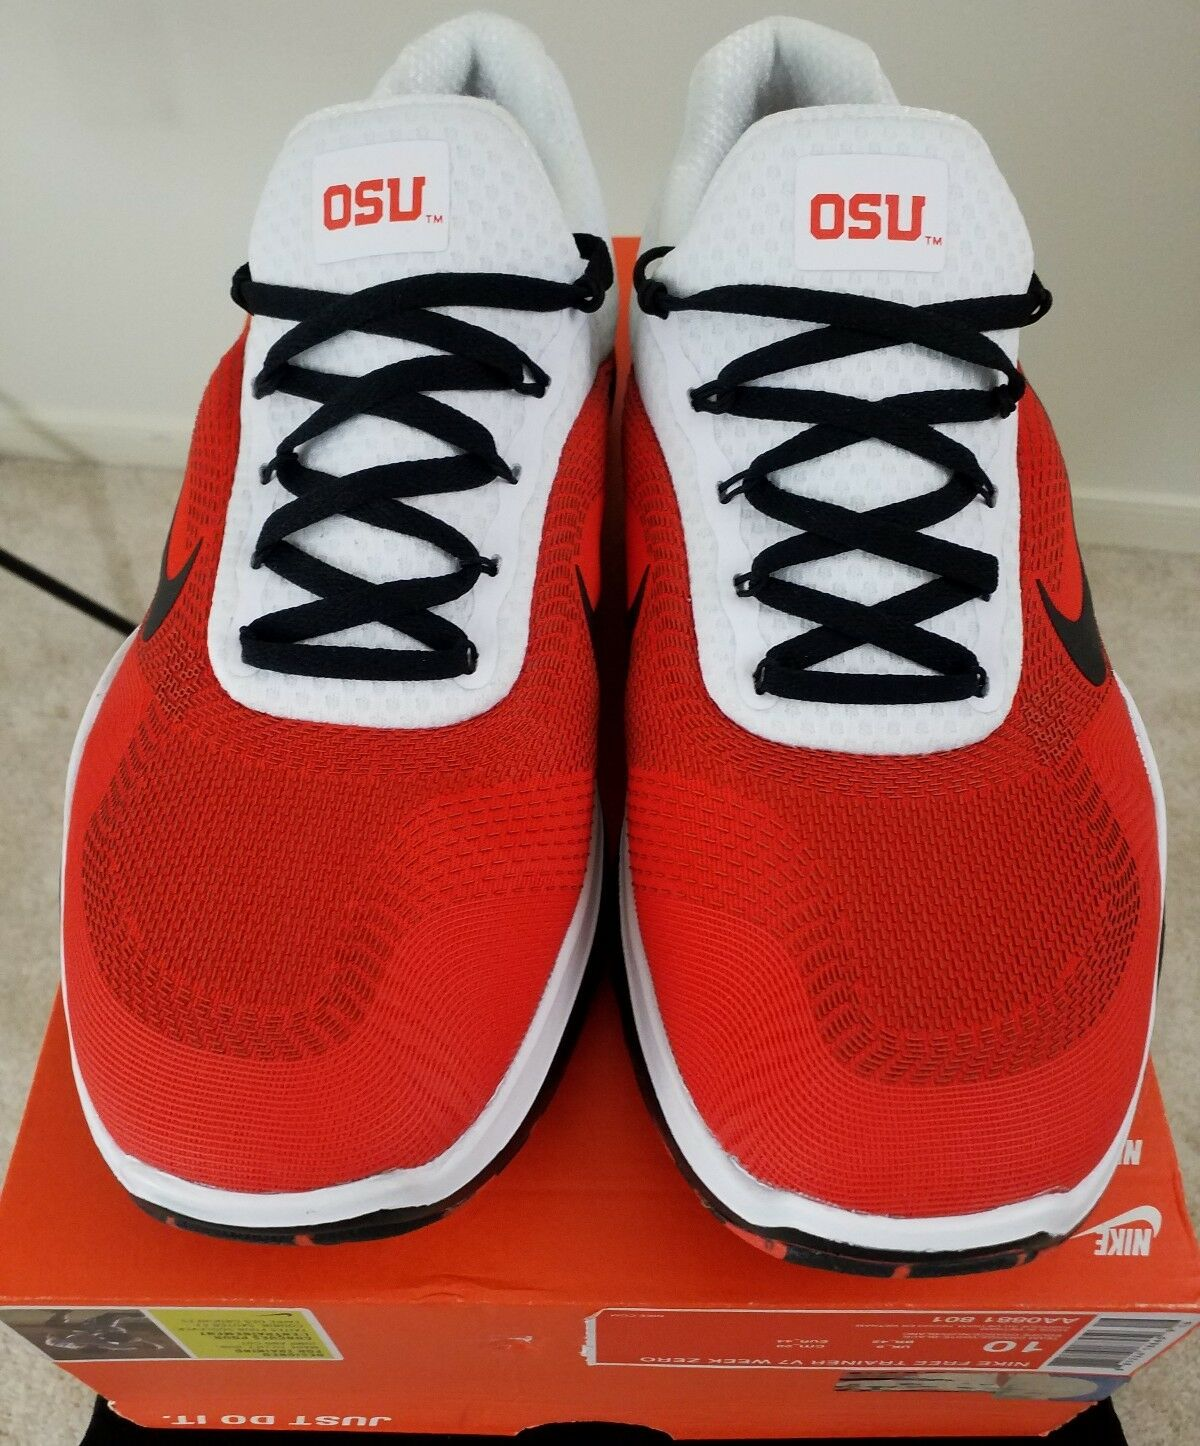 4740e8a49999 low price nike x fsu free trainer v7 week zero shoes available now 62a6f  5b3c1  usa nike free trainer v7 week zero sz 10 mens oregon state beavers  aa0881 ...